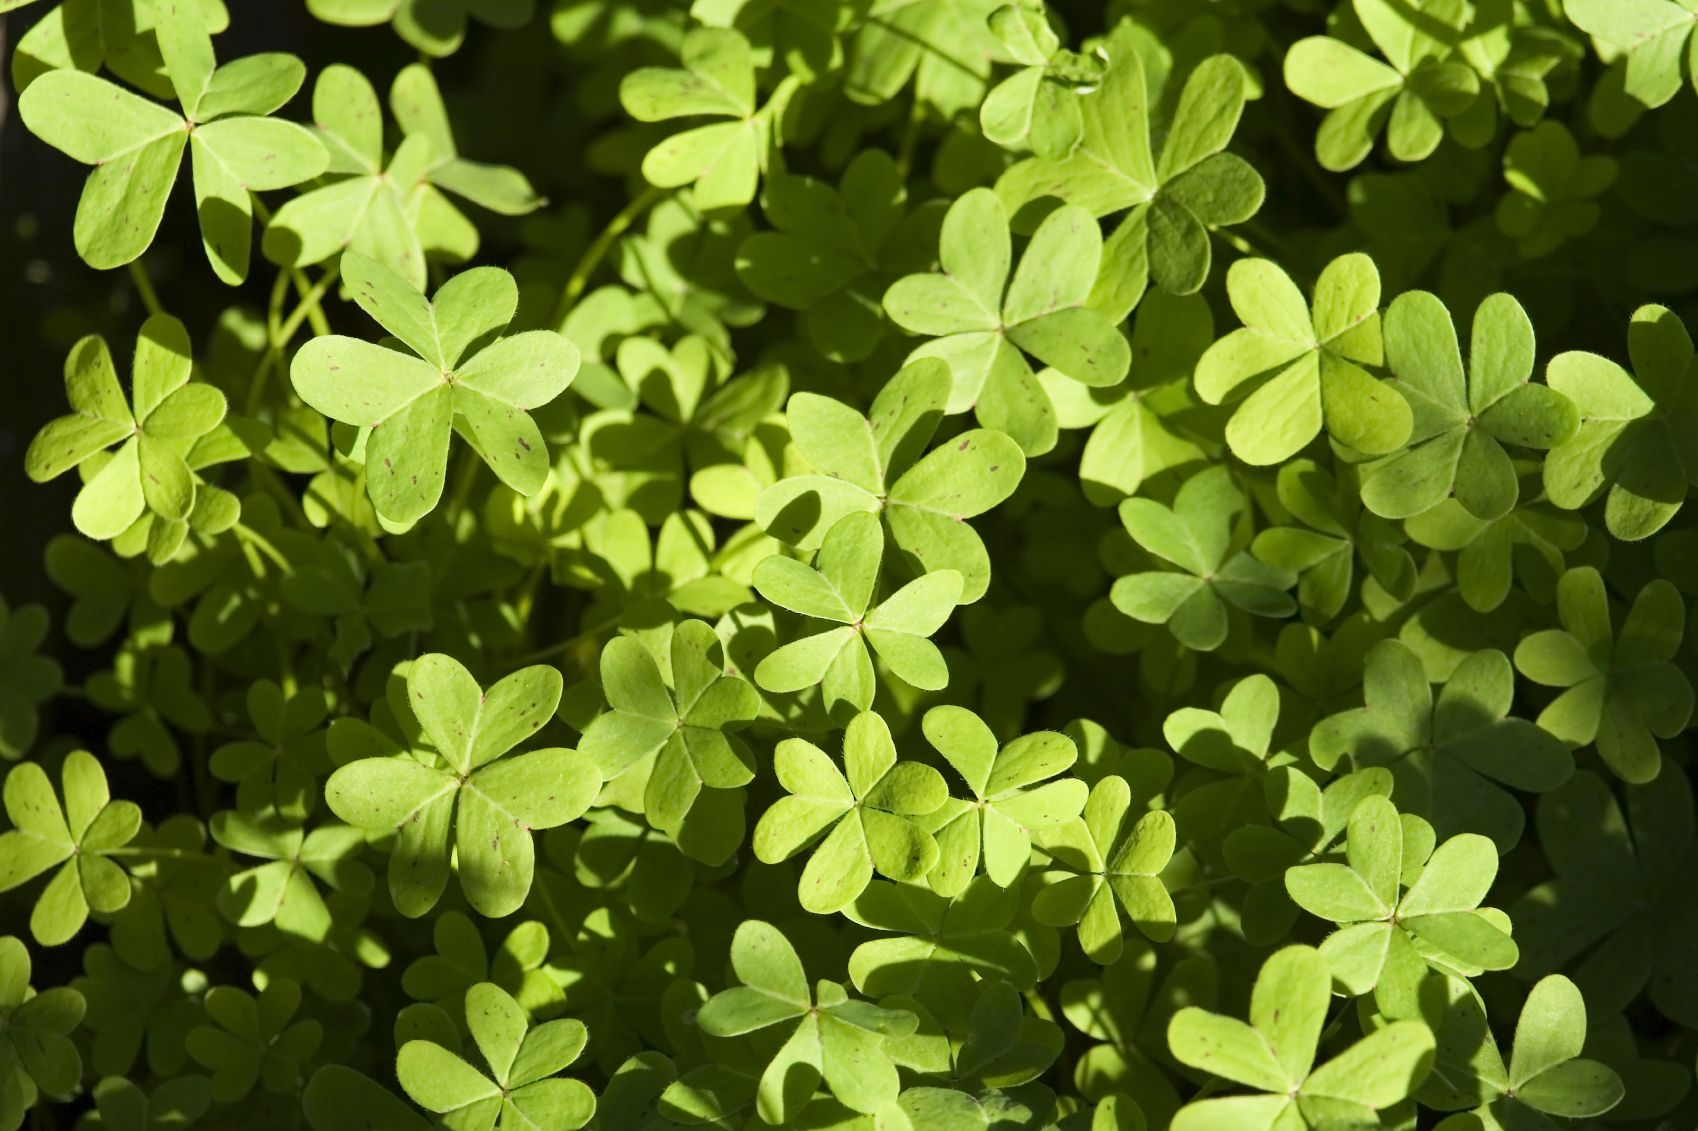 Managing Oxalis Weeds How To Get Rid Of Oxalis Weeds In The Lawn